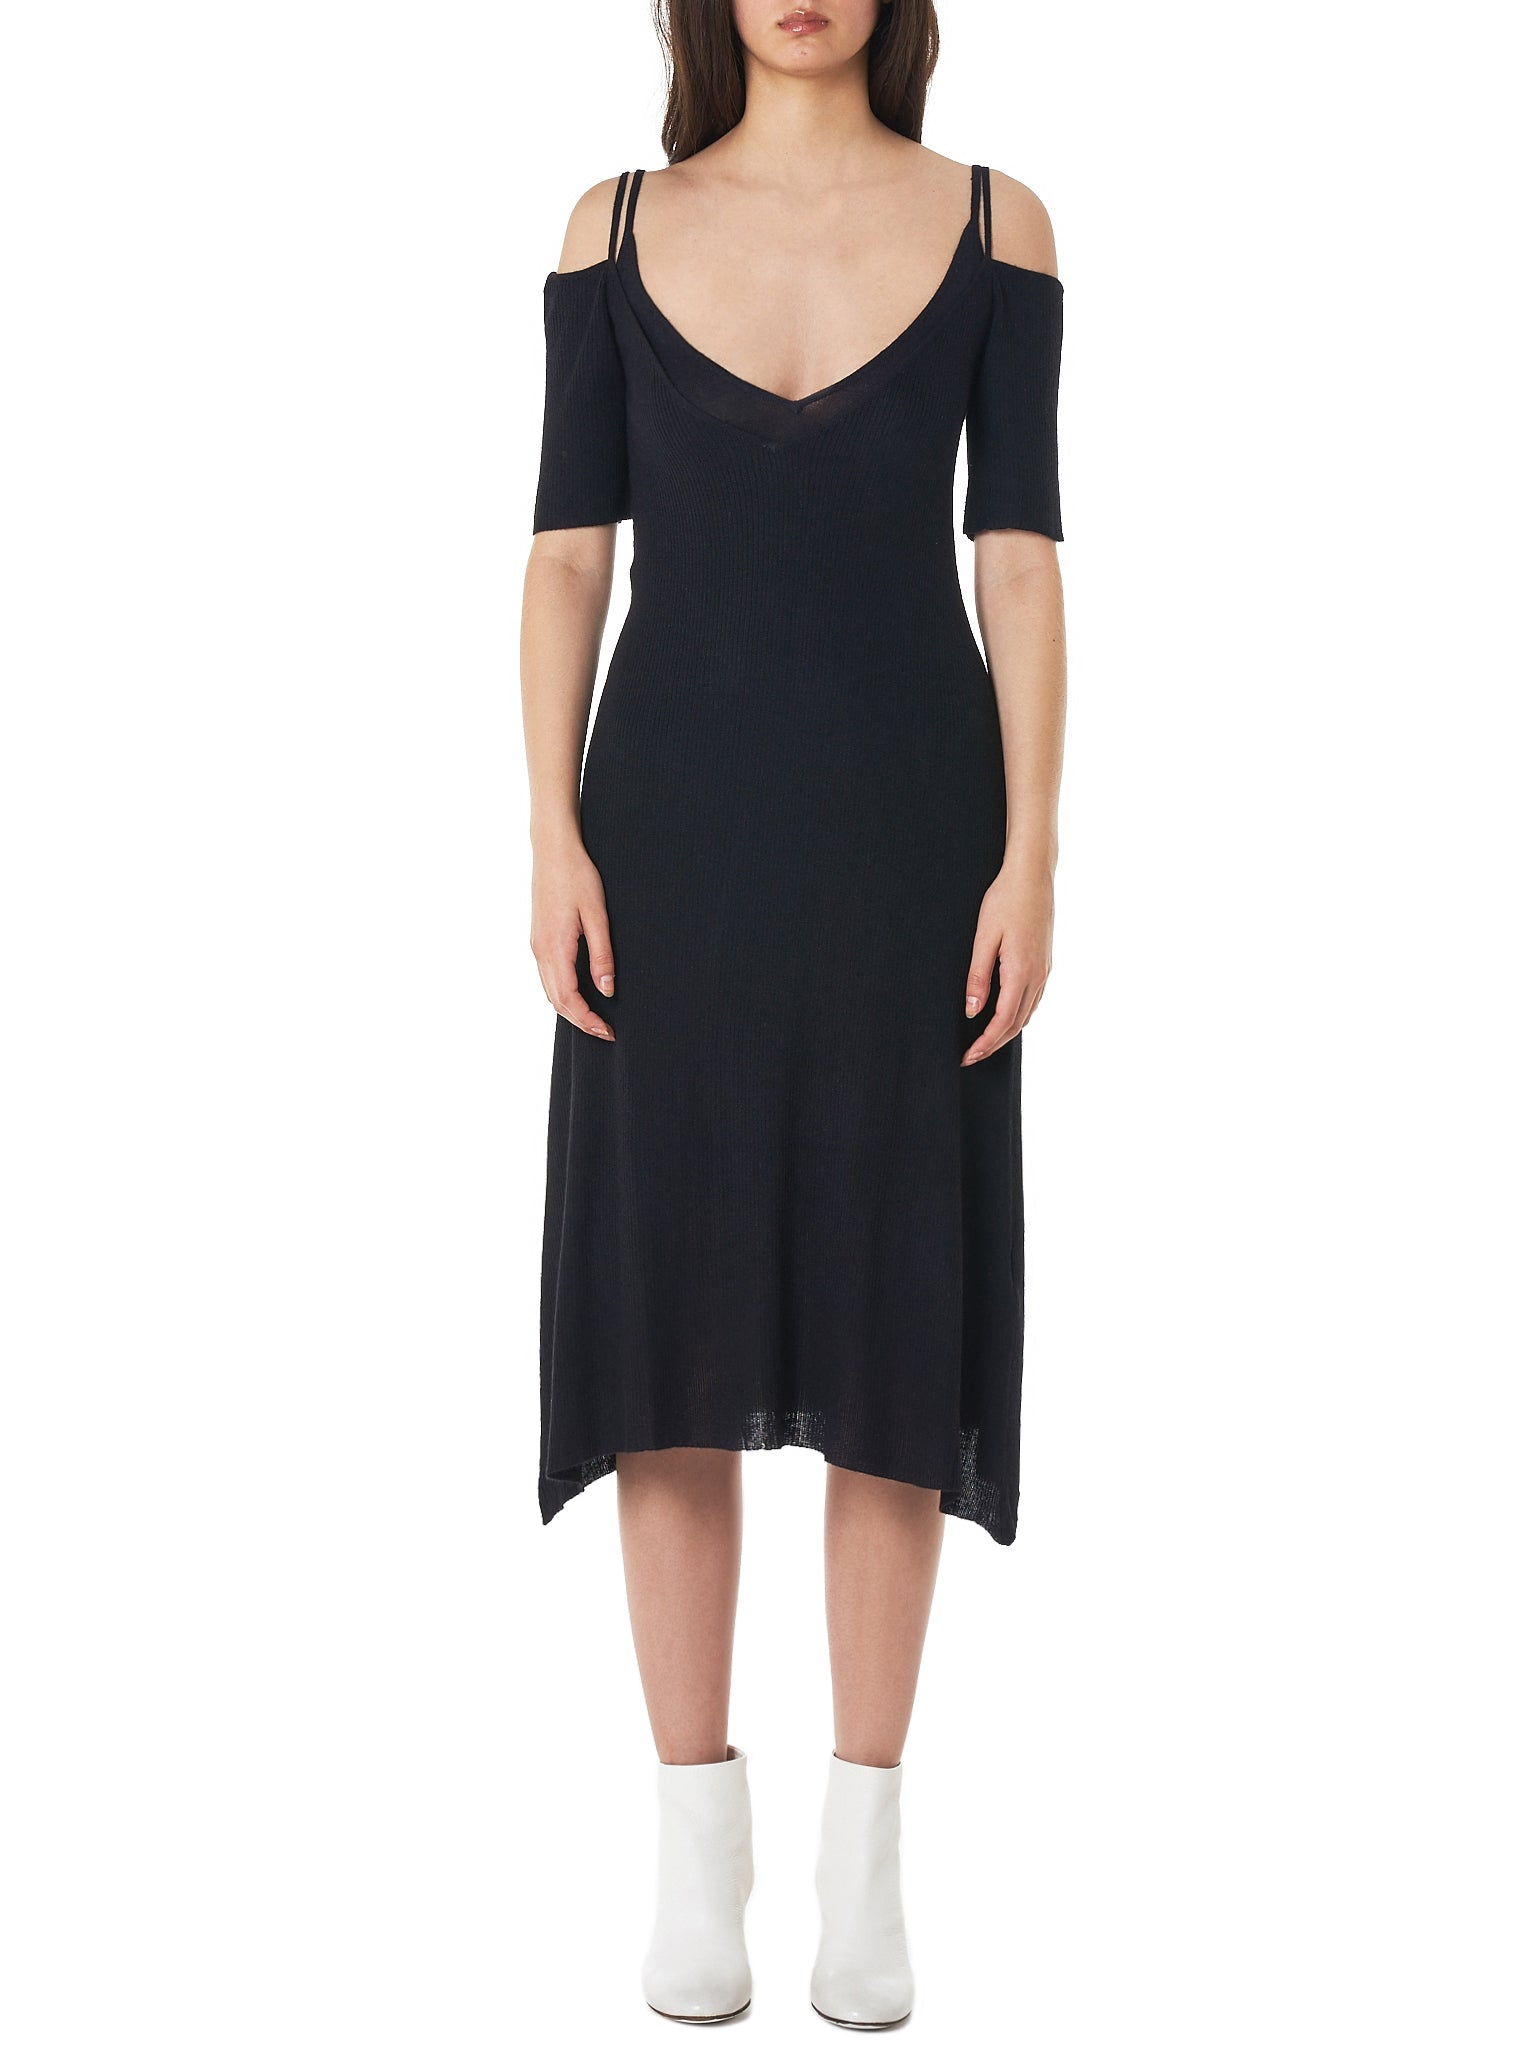 Ryan Roche Dress - Hlorenzo Front